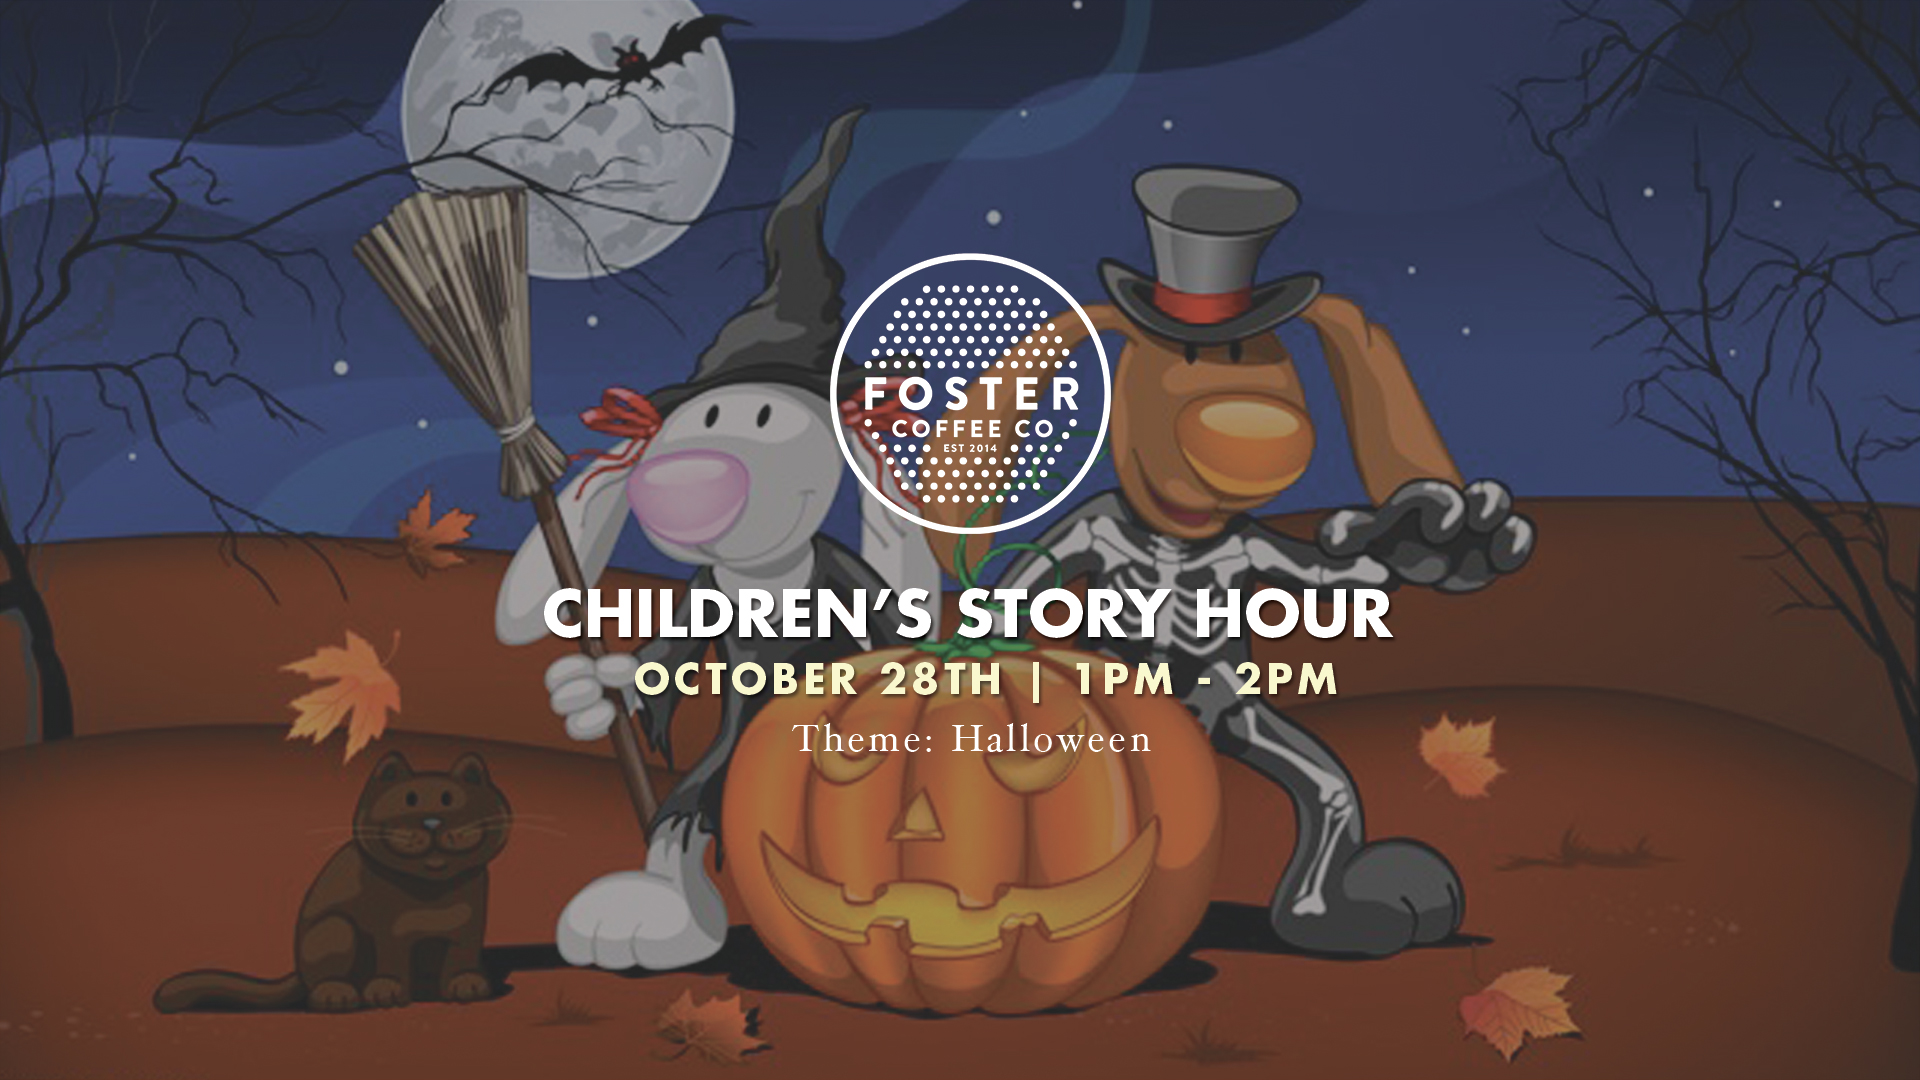 storyhour_event-cover10.28.17.jpg